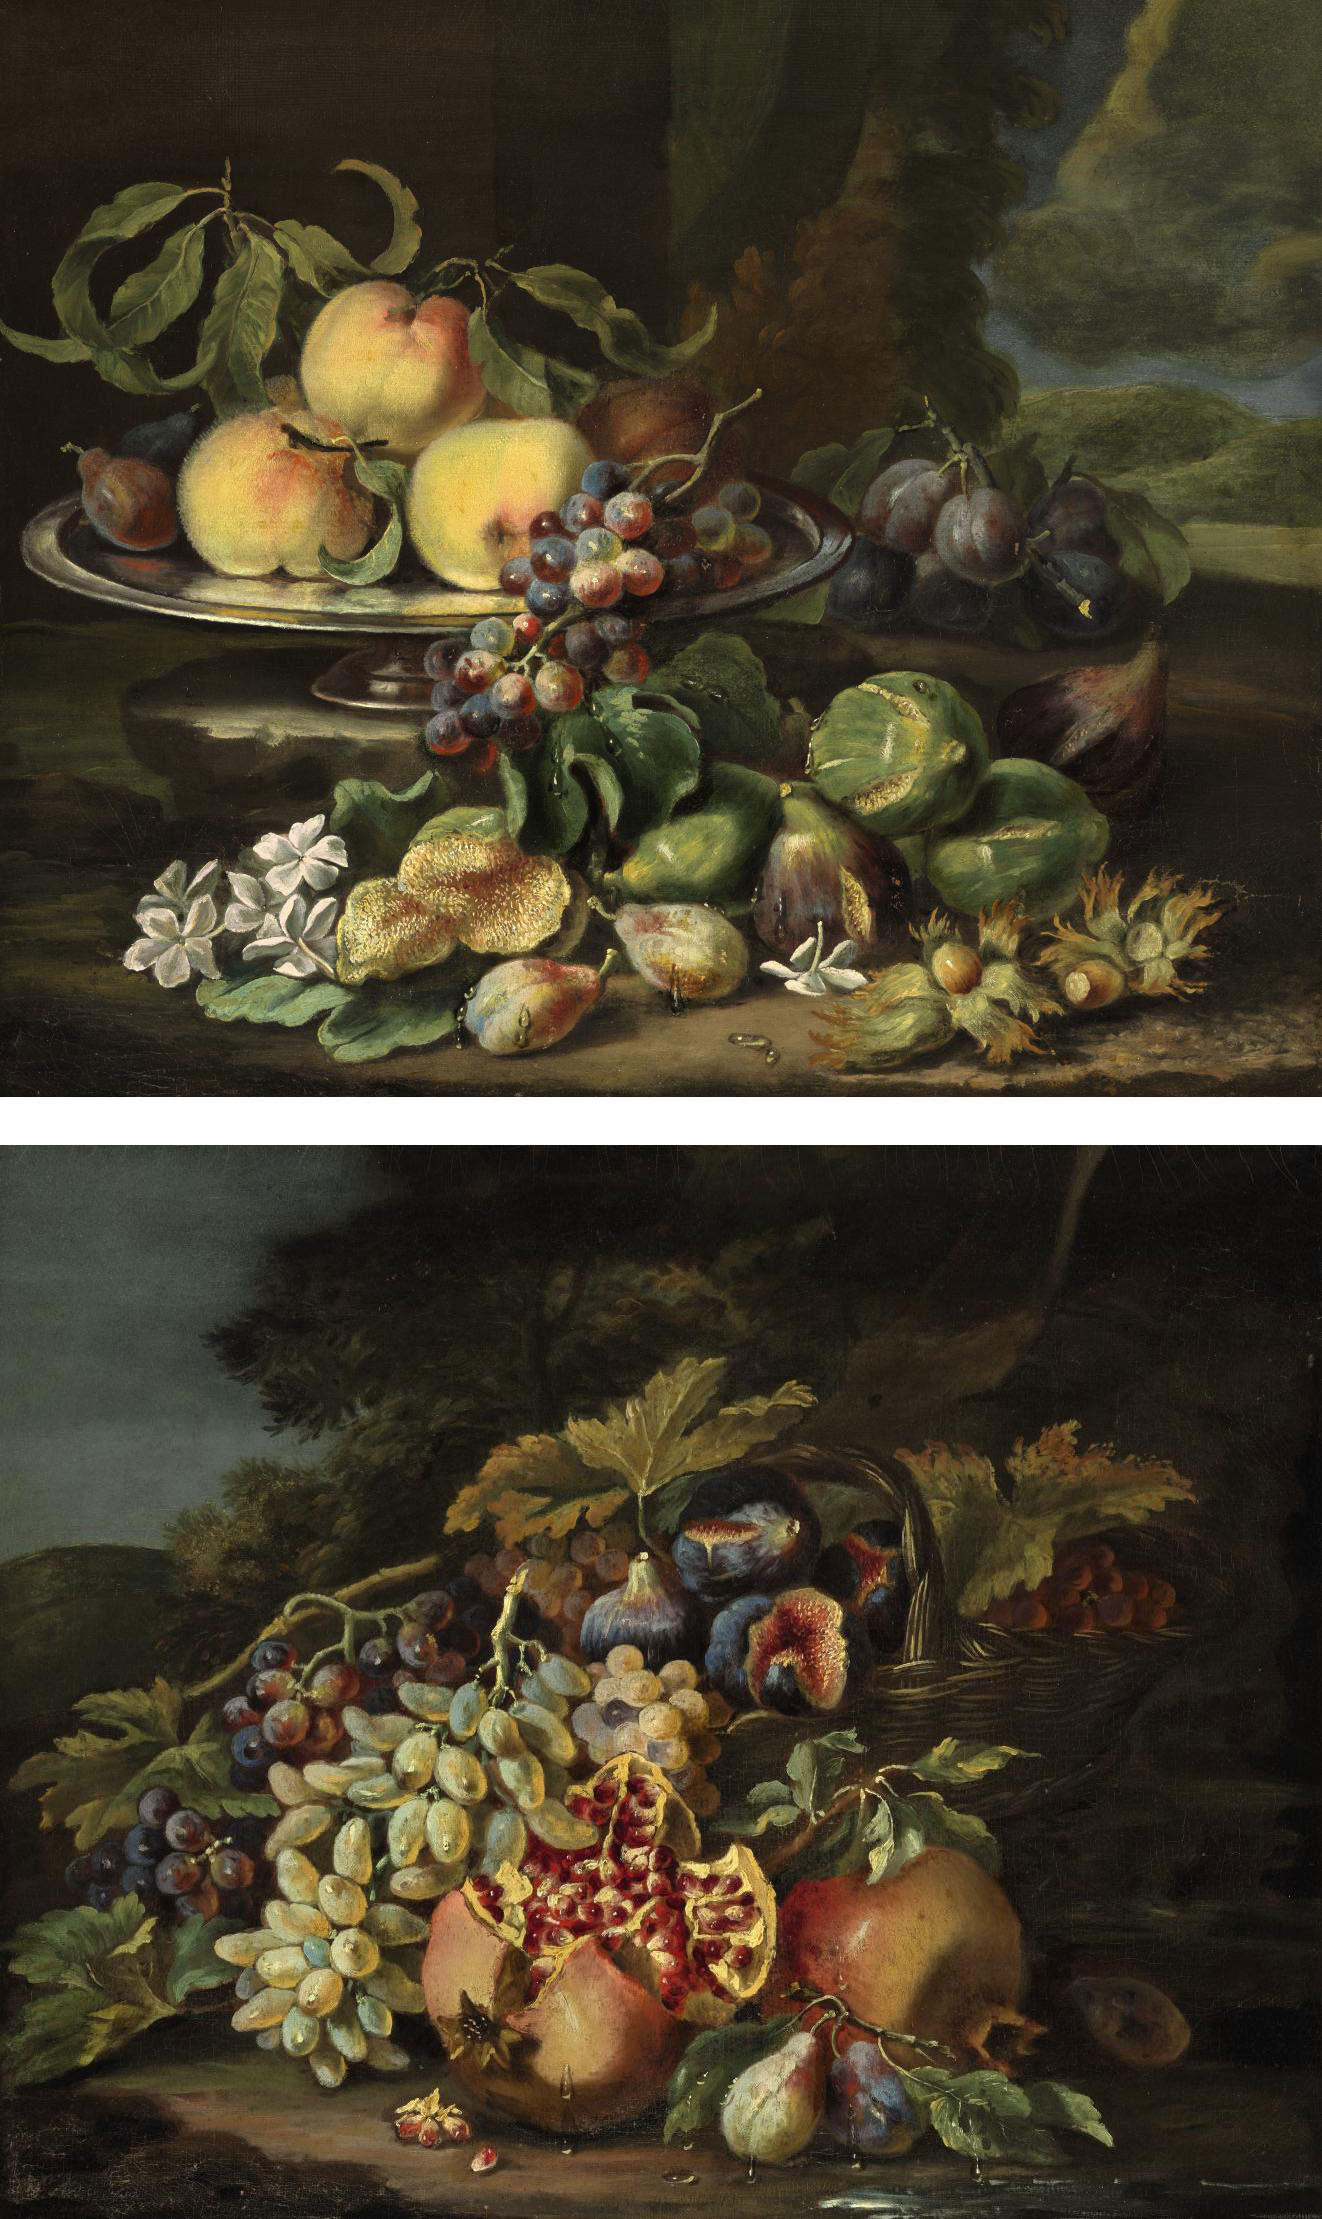 Peaches, plums, and grapes on a silver dish, with figs, flowers and chestnuts, all on a natural ground against a landscape; and A basket of figs and grapes with pomegranates and plums, all on a natural ground